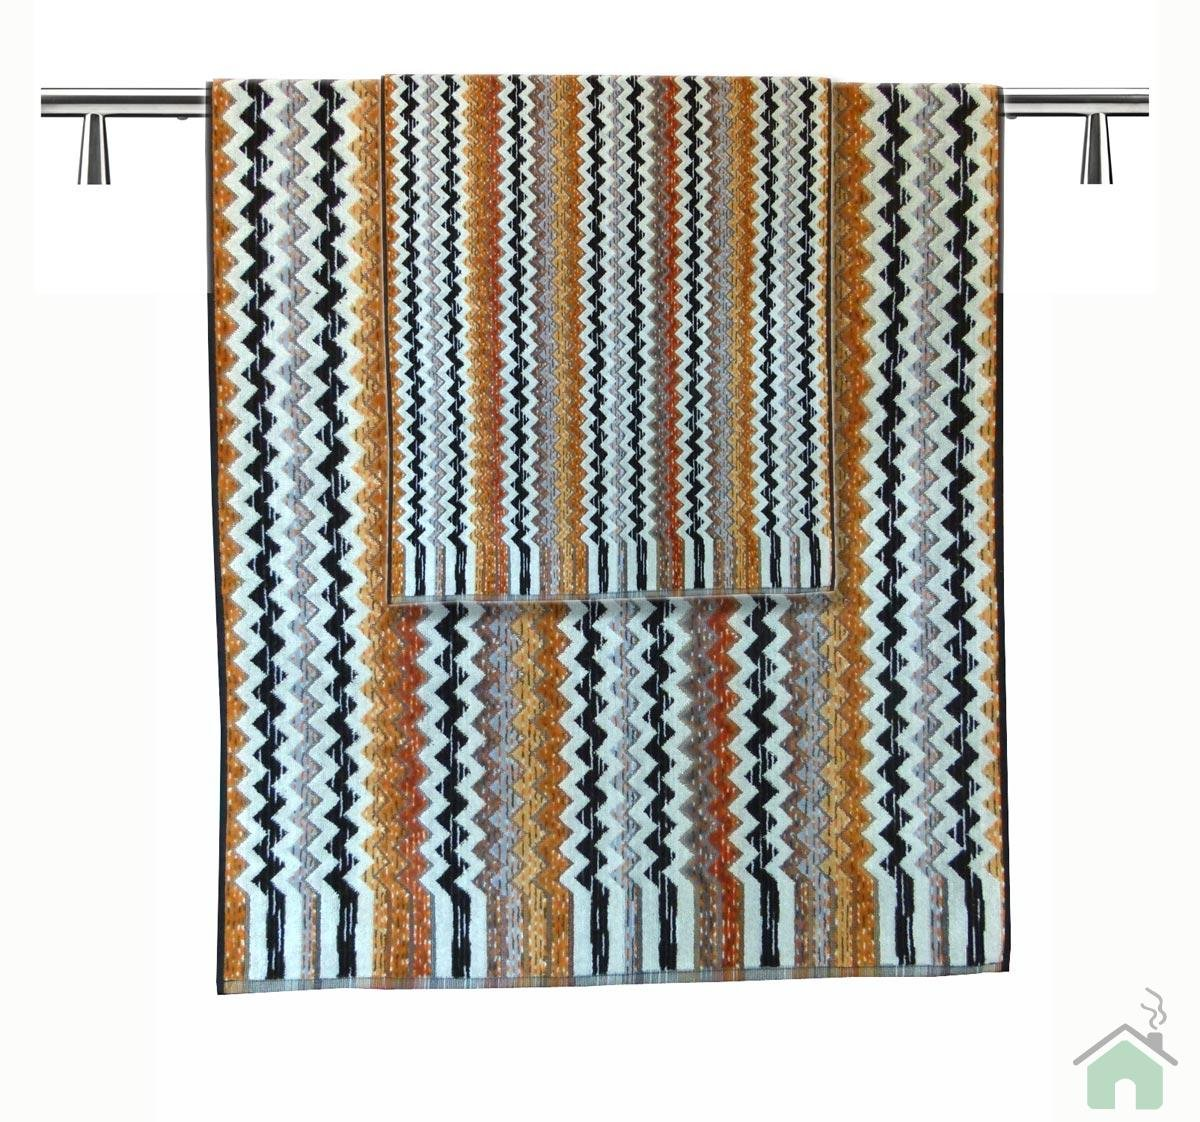 Full set 5 pieces Missoni Home Paul var. 160 - 2014 Collection